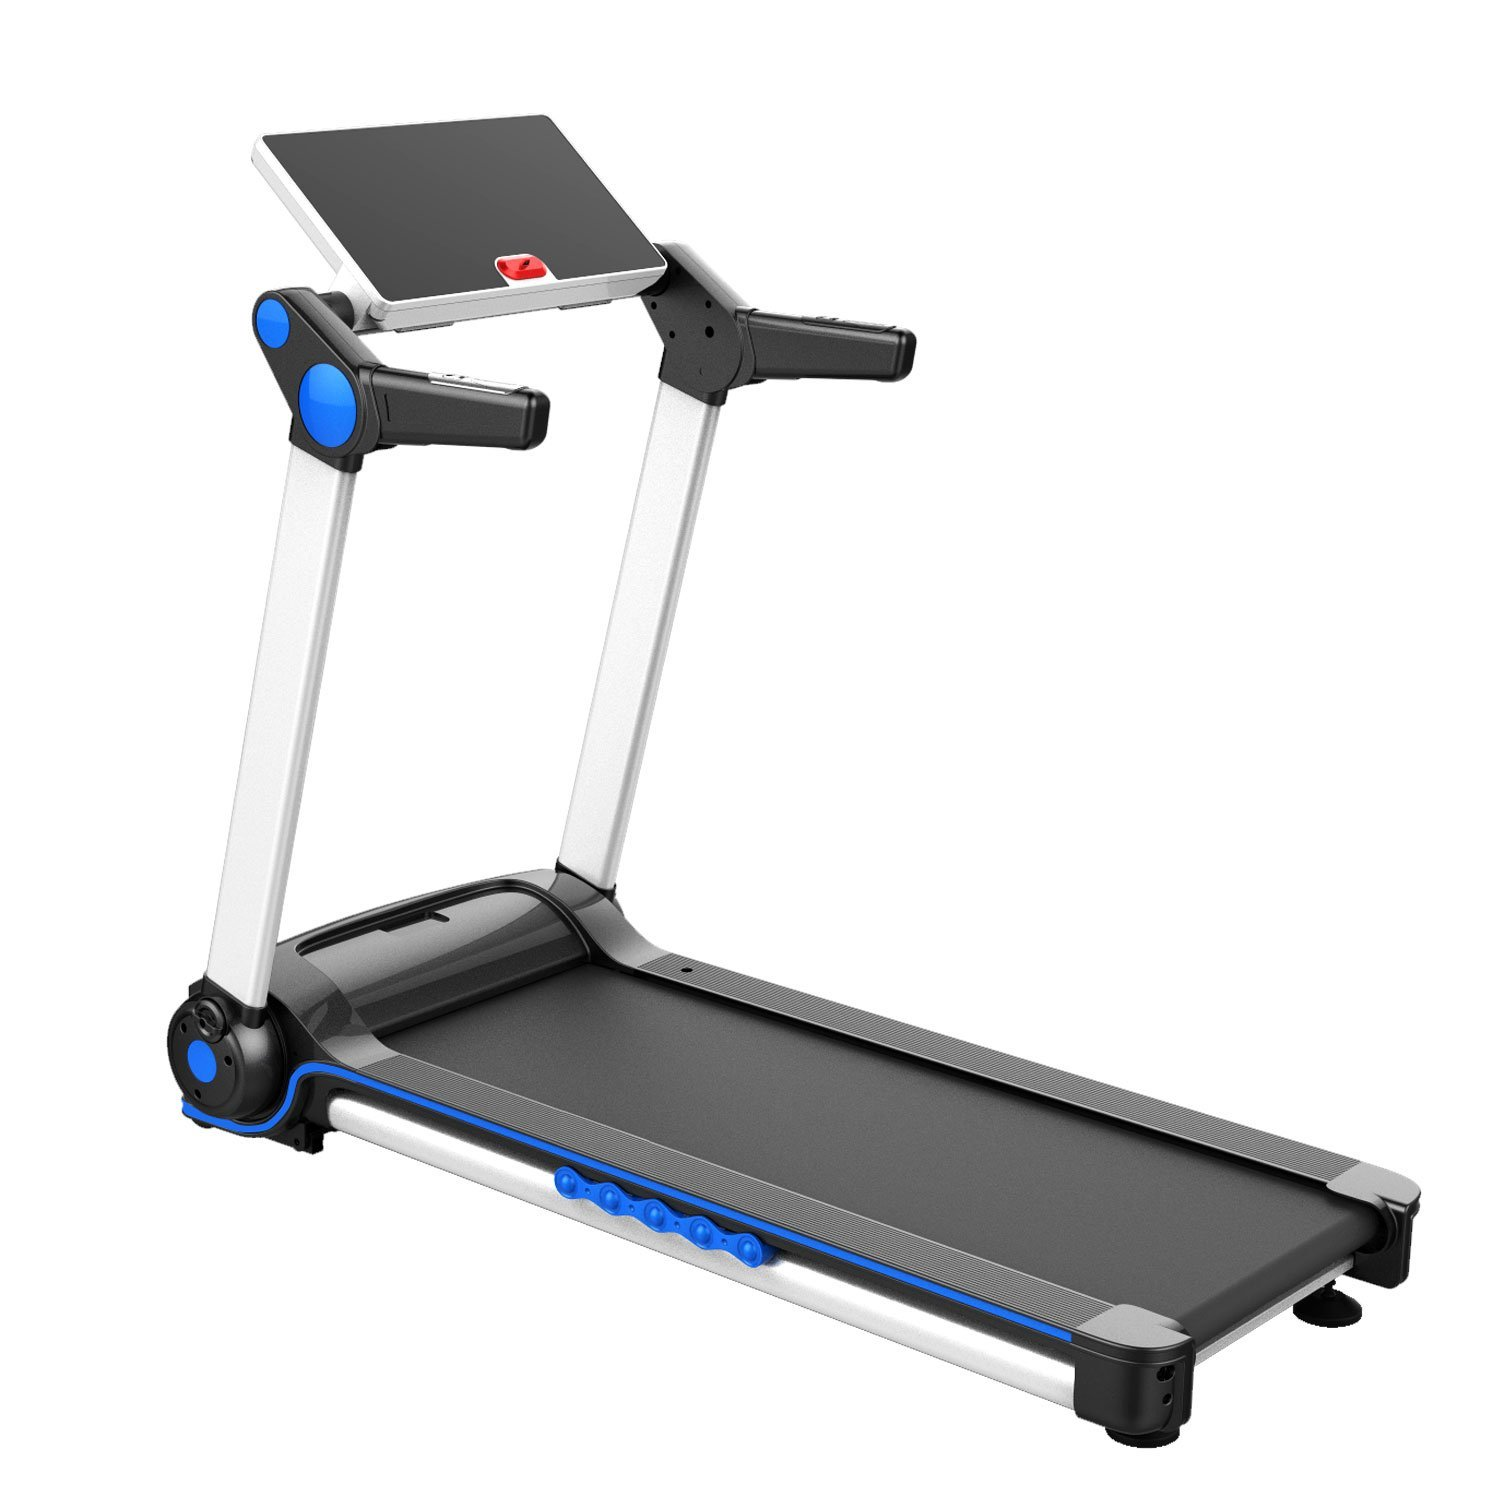 IUBU Fitness K5 Folding Treadmill